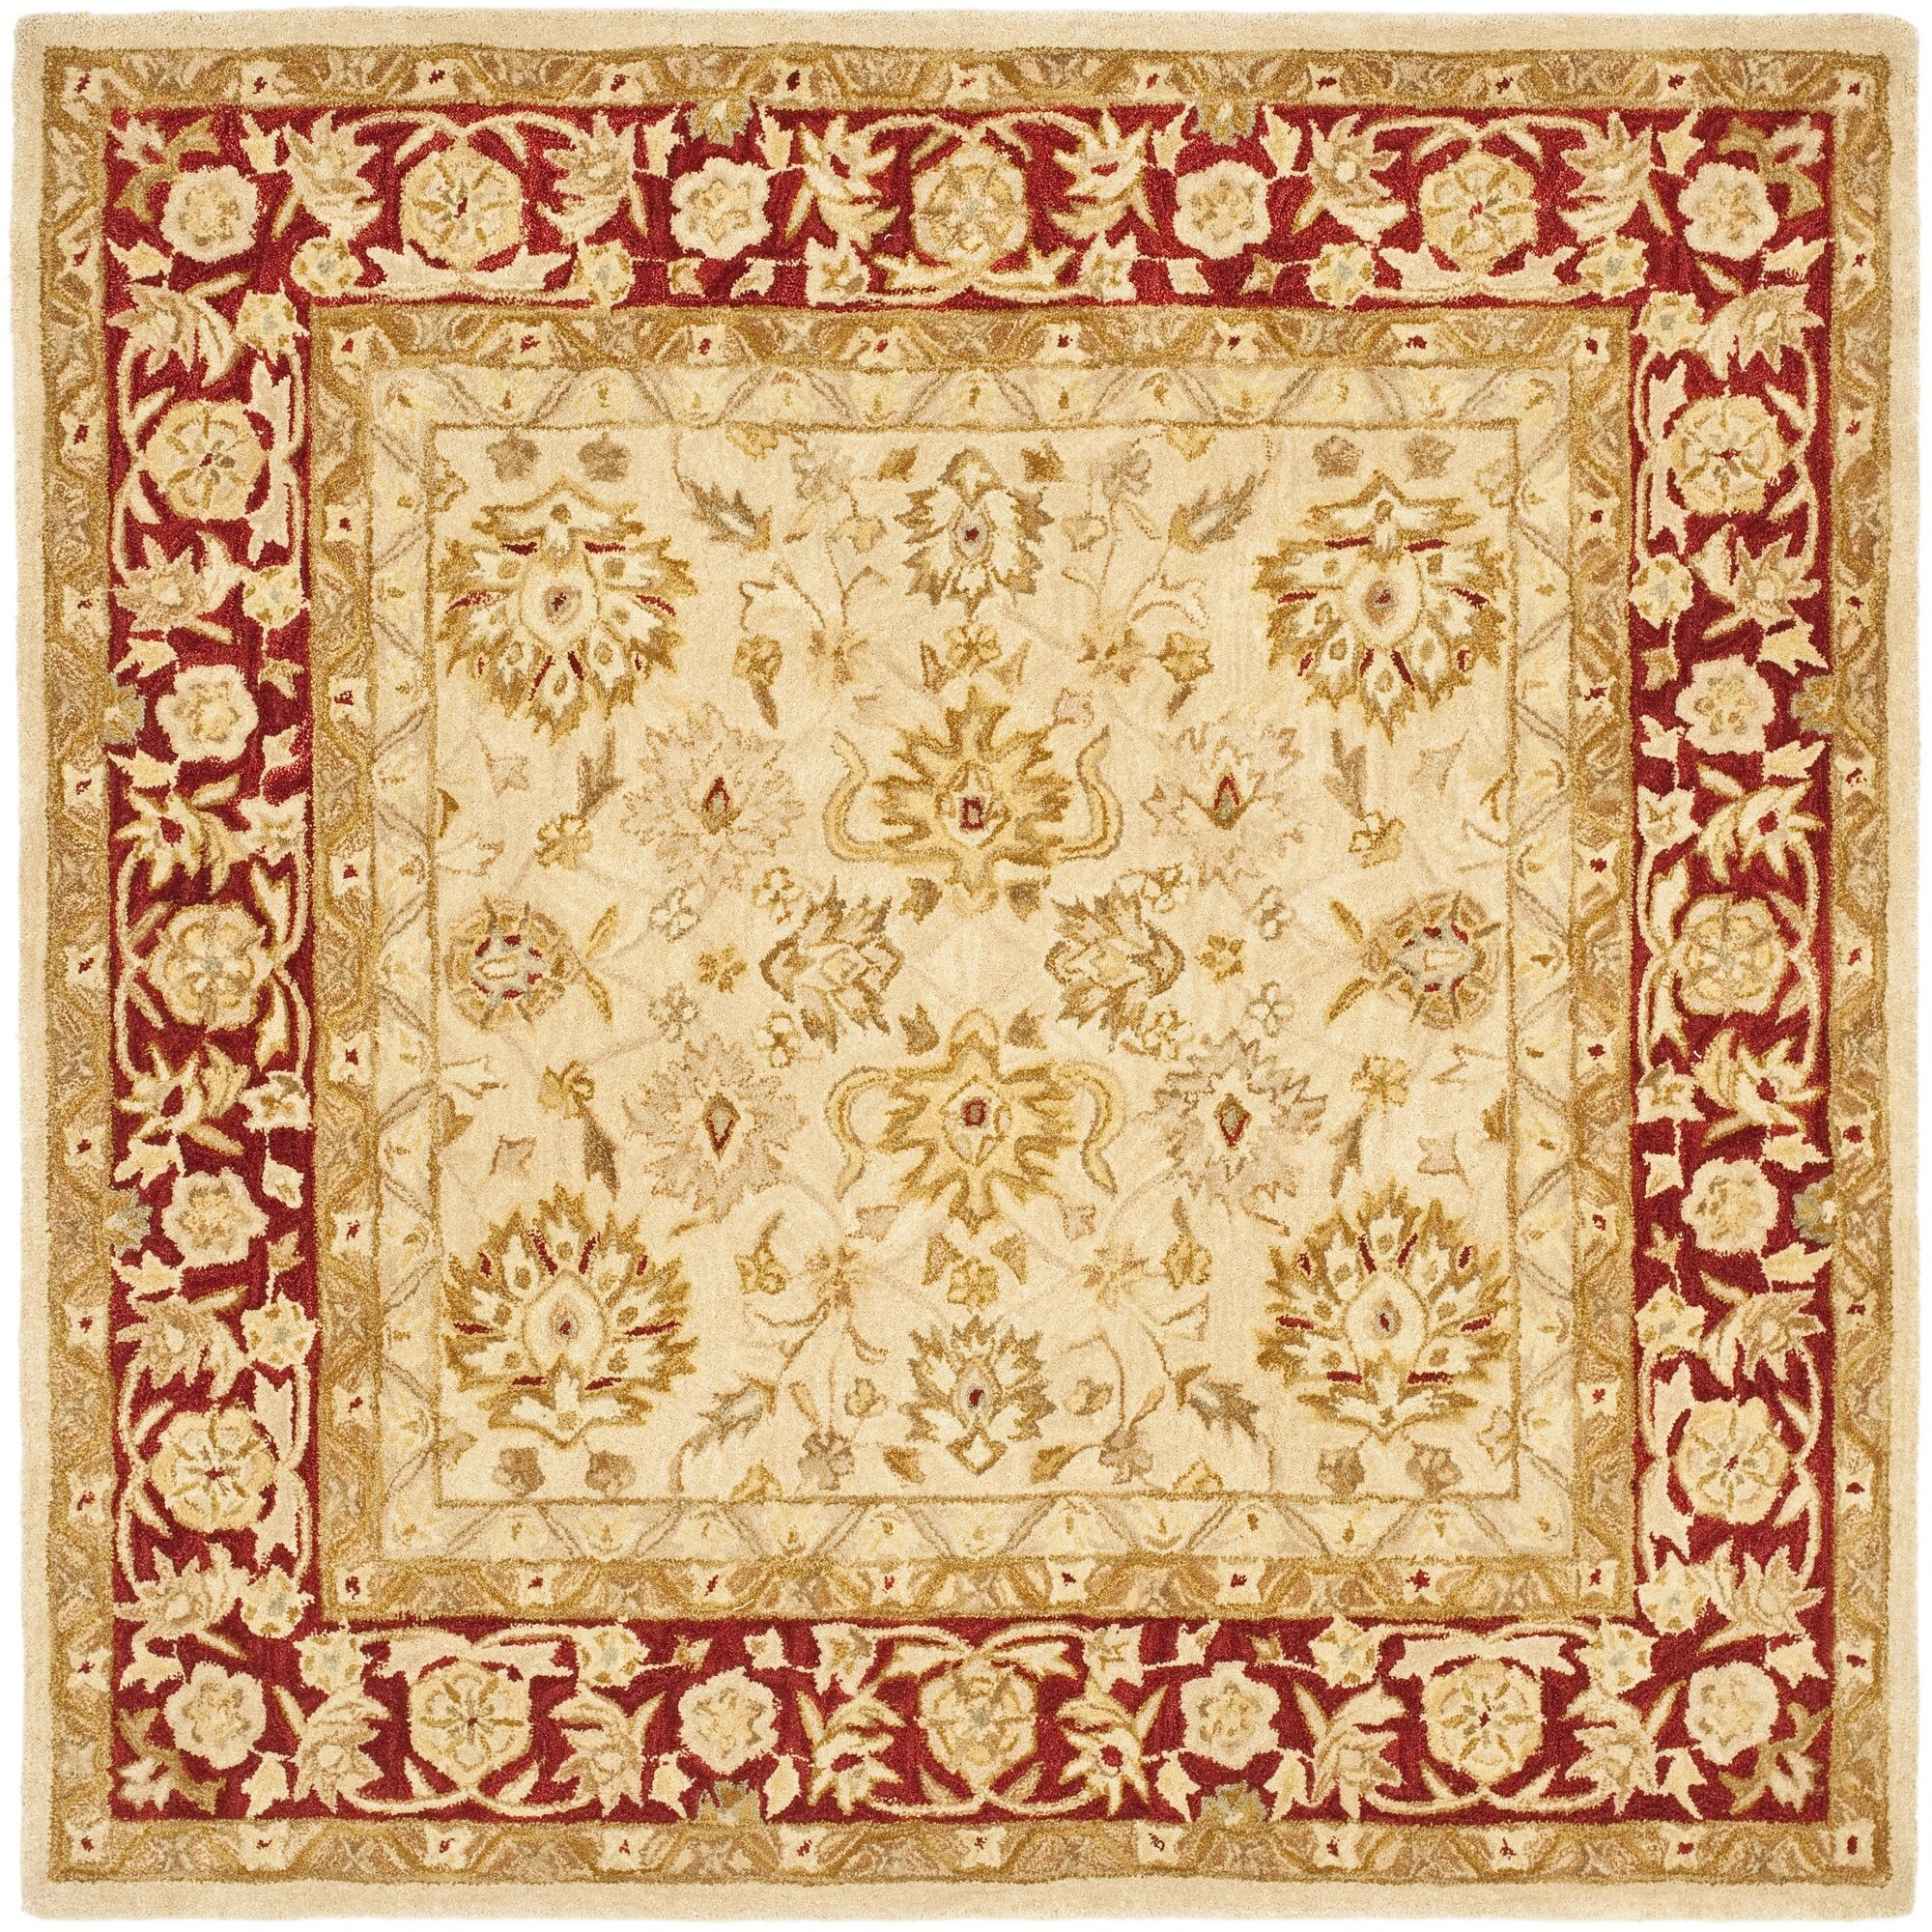 Pritchard Hand-Woven Wool Area Rug Rug Size: Square 6'